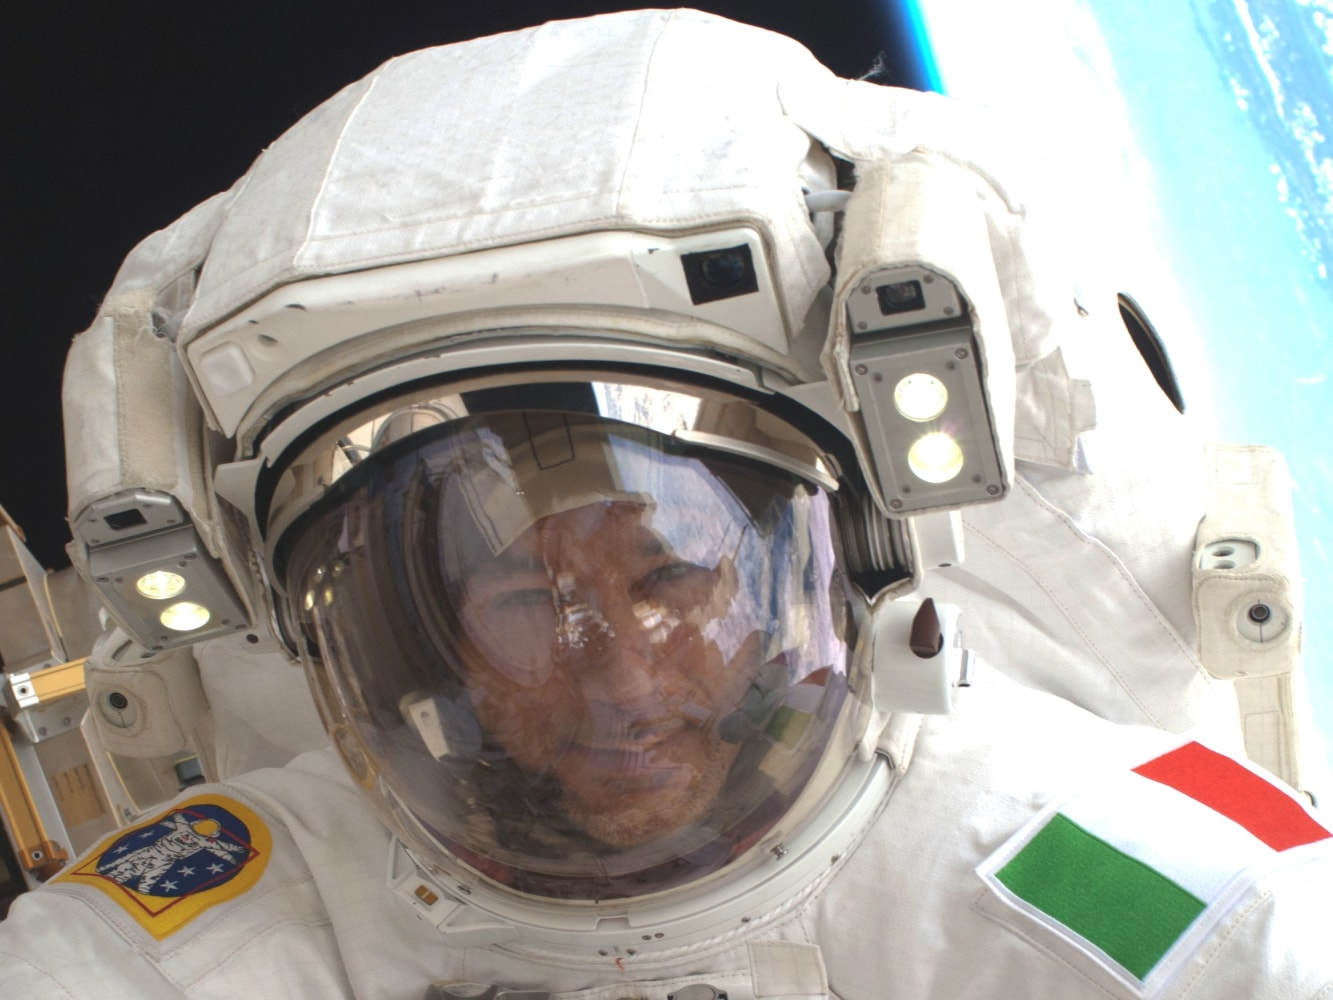 When spacesuits go wrong, it's deadly serious in orbit ...